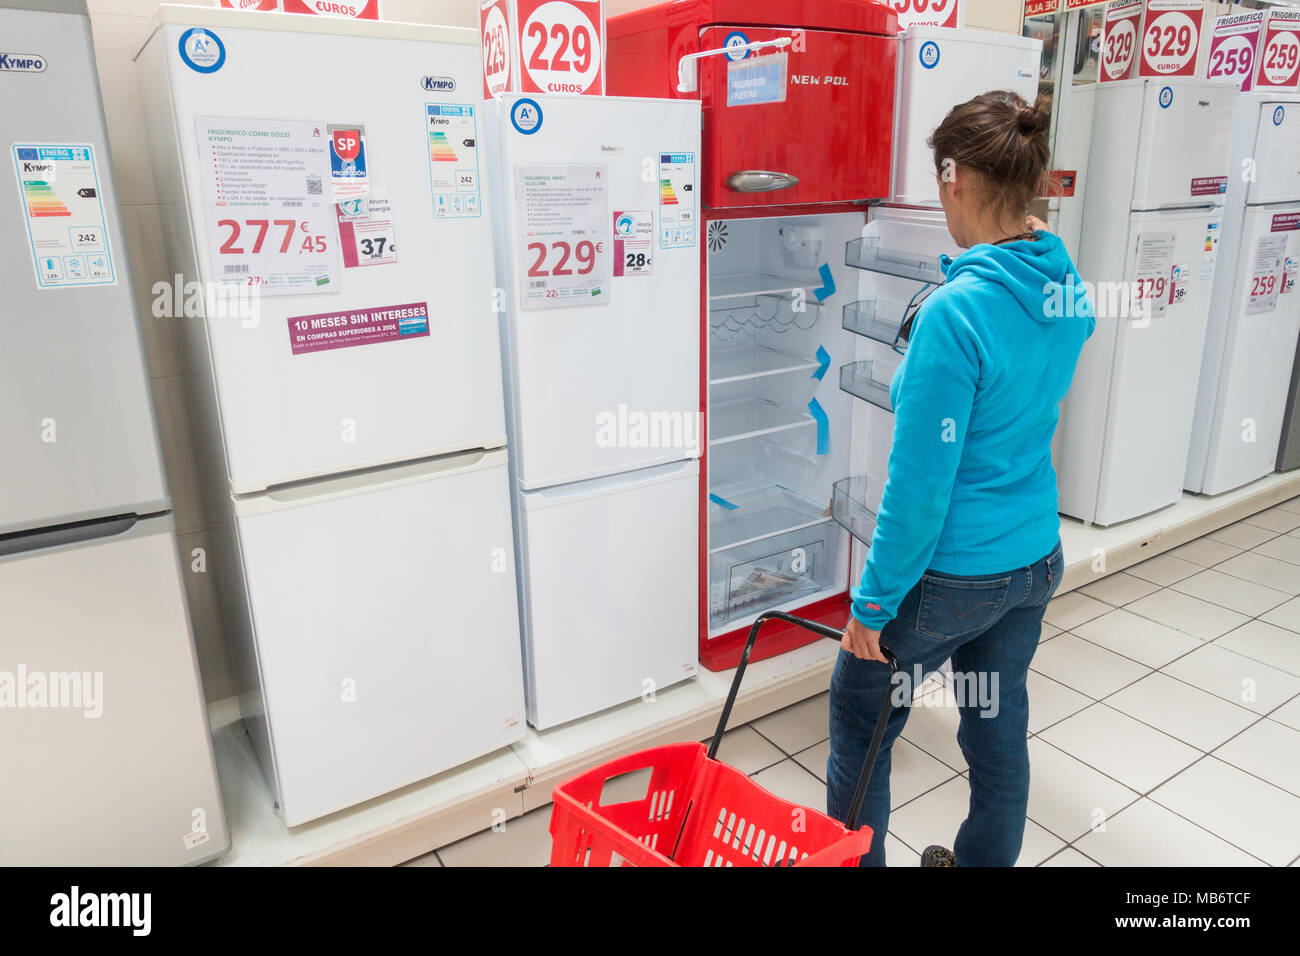 woman looking at new refrigerator/ fridges/fridge freezers in electrical store - Stock Image